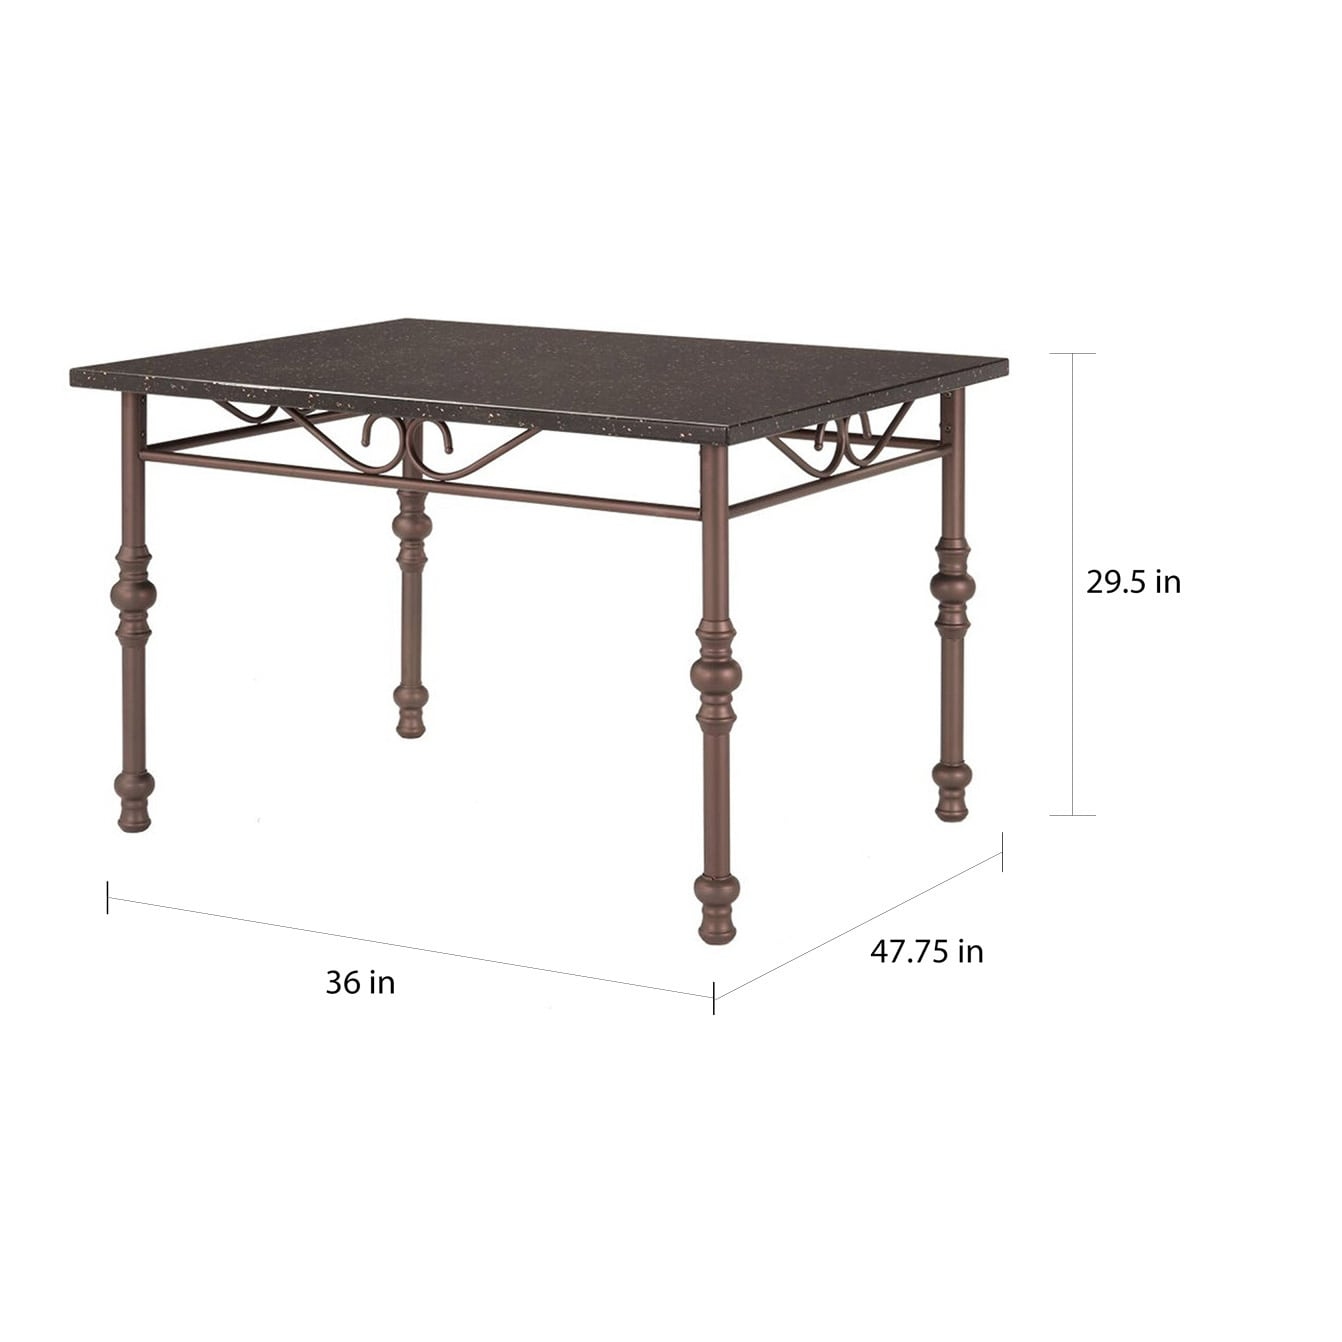 Zella Bistro Faux Marble Top Metal Scroll Dining Table by iNSPIRE Q Classic  - Free Shipping Today - Overstock.com - 17256972